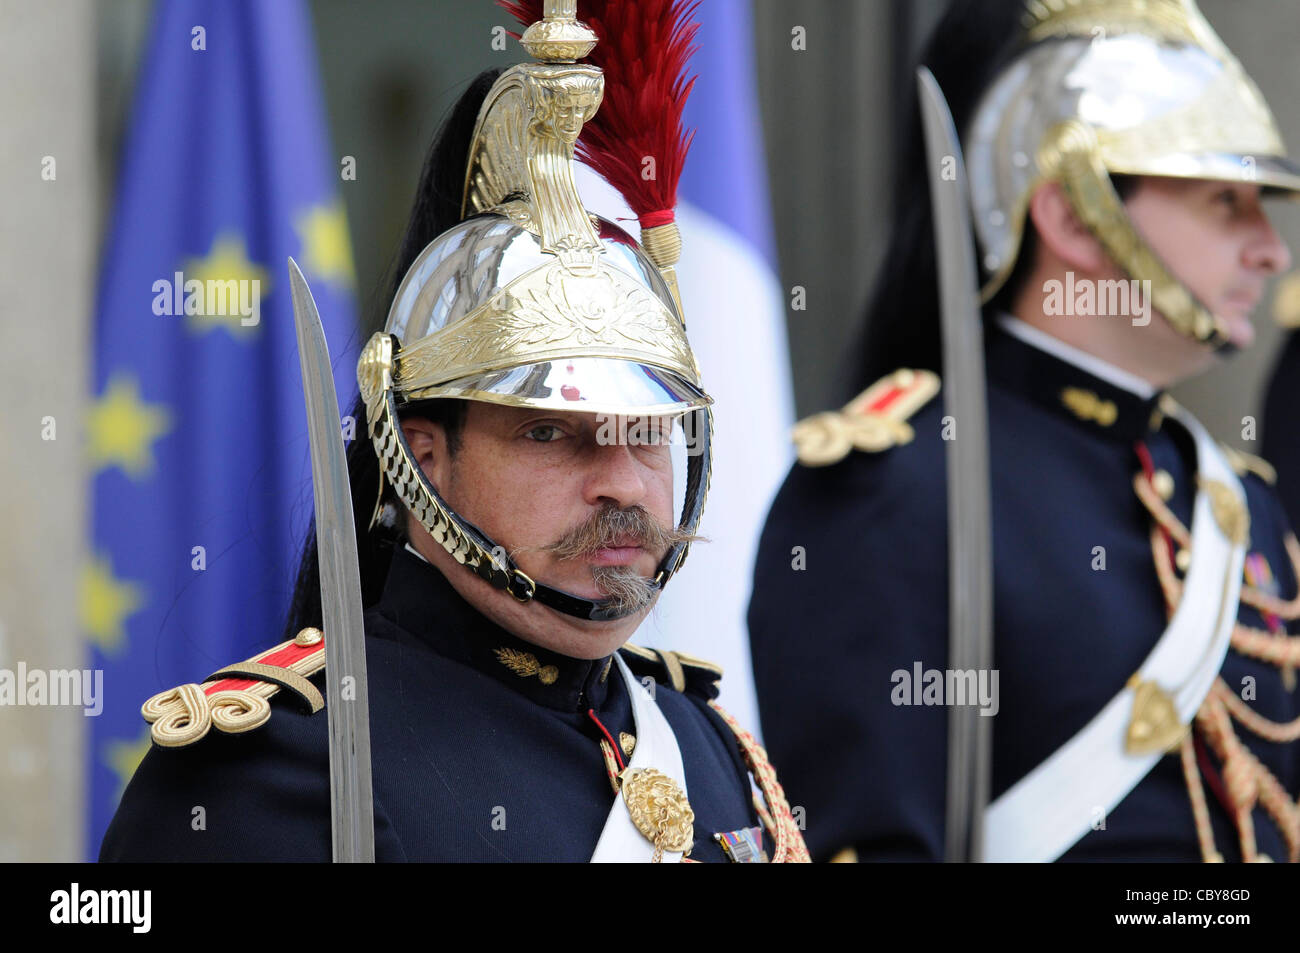 A Republican guard standing guard at the Elysee palace, France' s official presidency seat, in Paris, France. - Stock Image